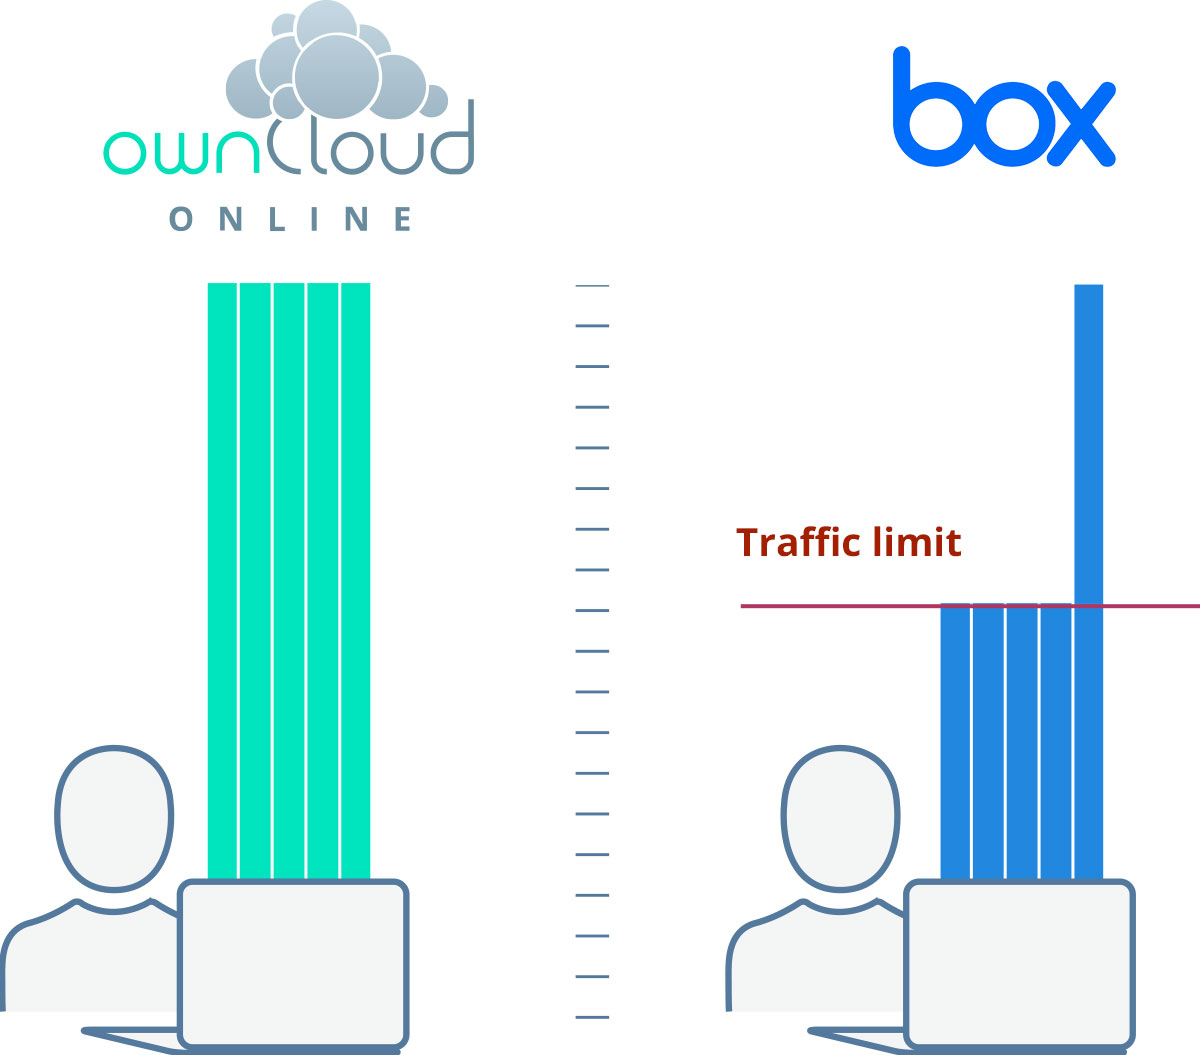 Compare ownCloud.online and Box.com: No traffic limit